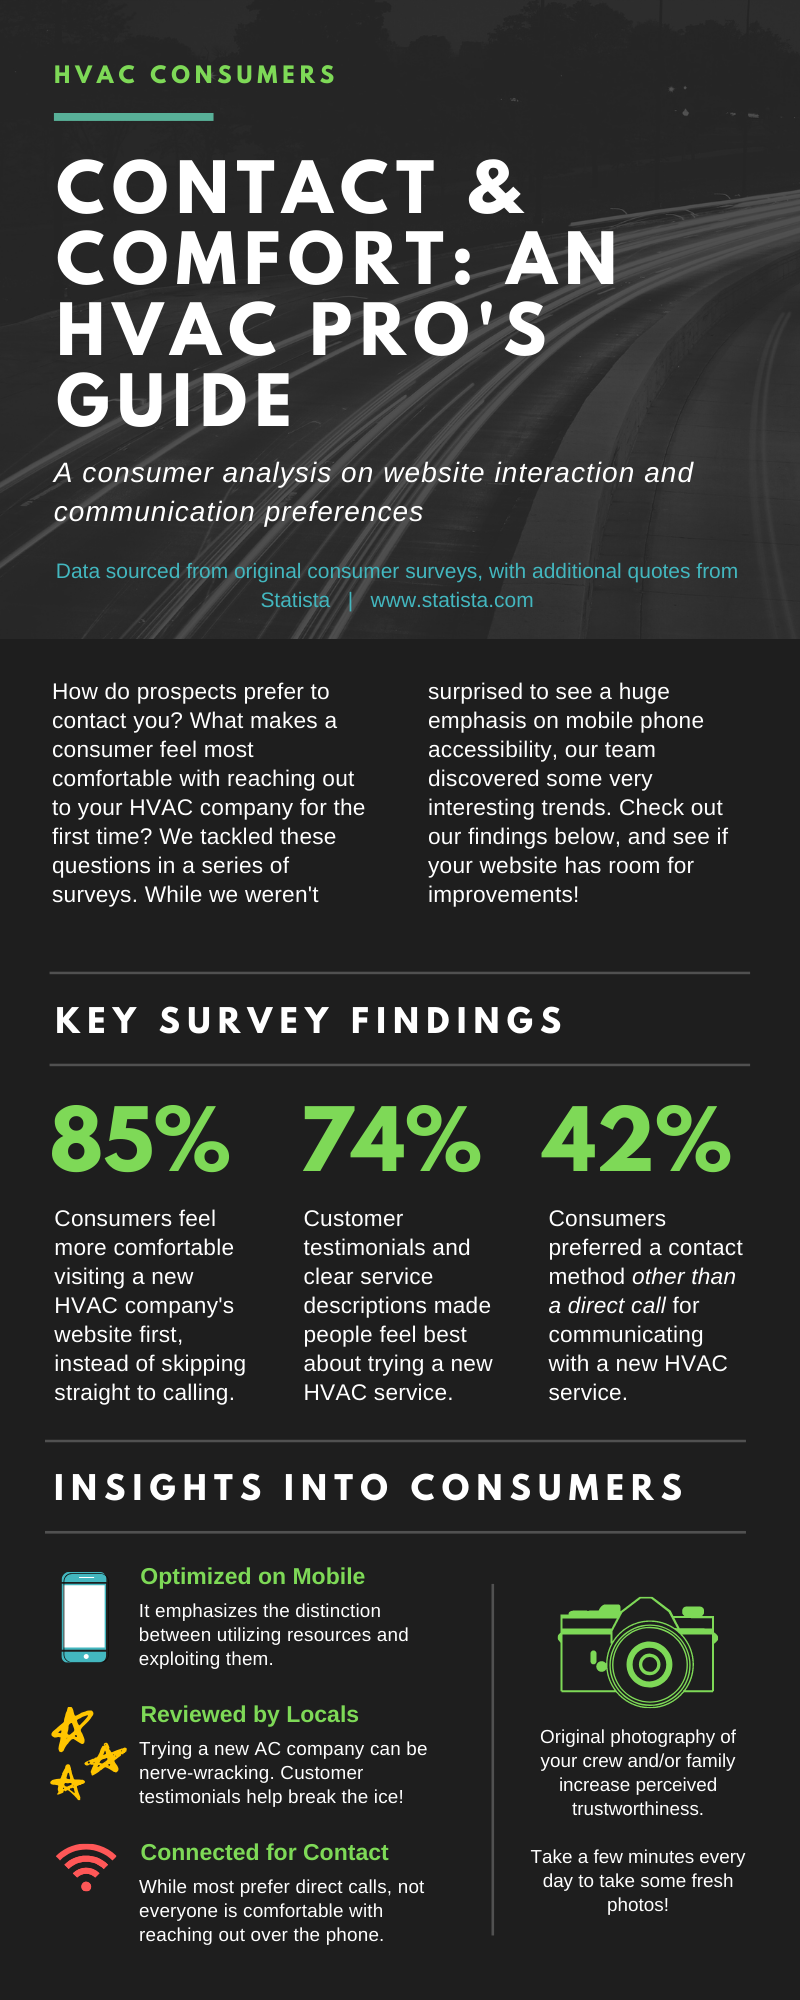 Key Findings on Customer Reviews and Contact Preferences